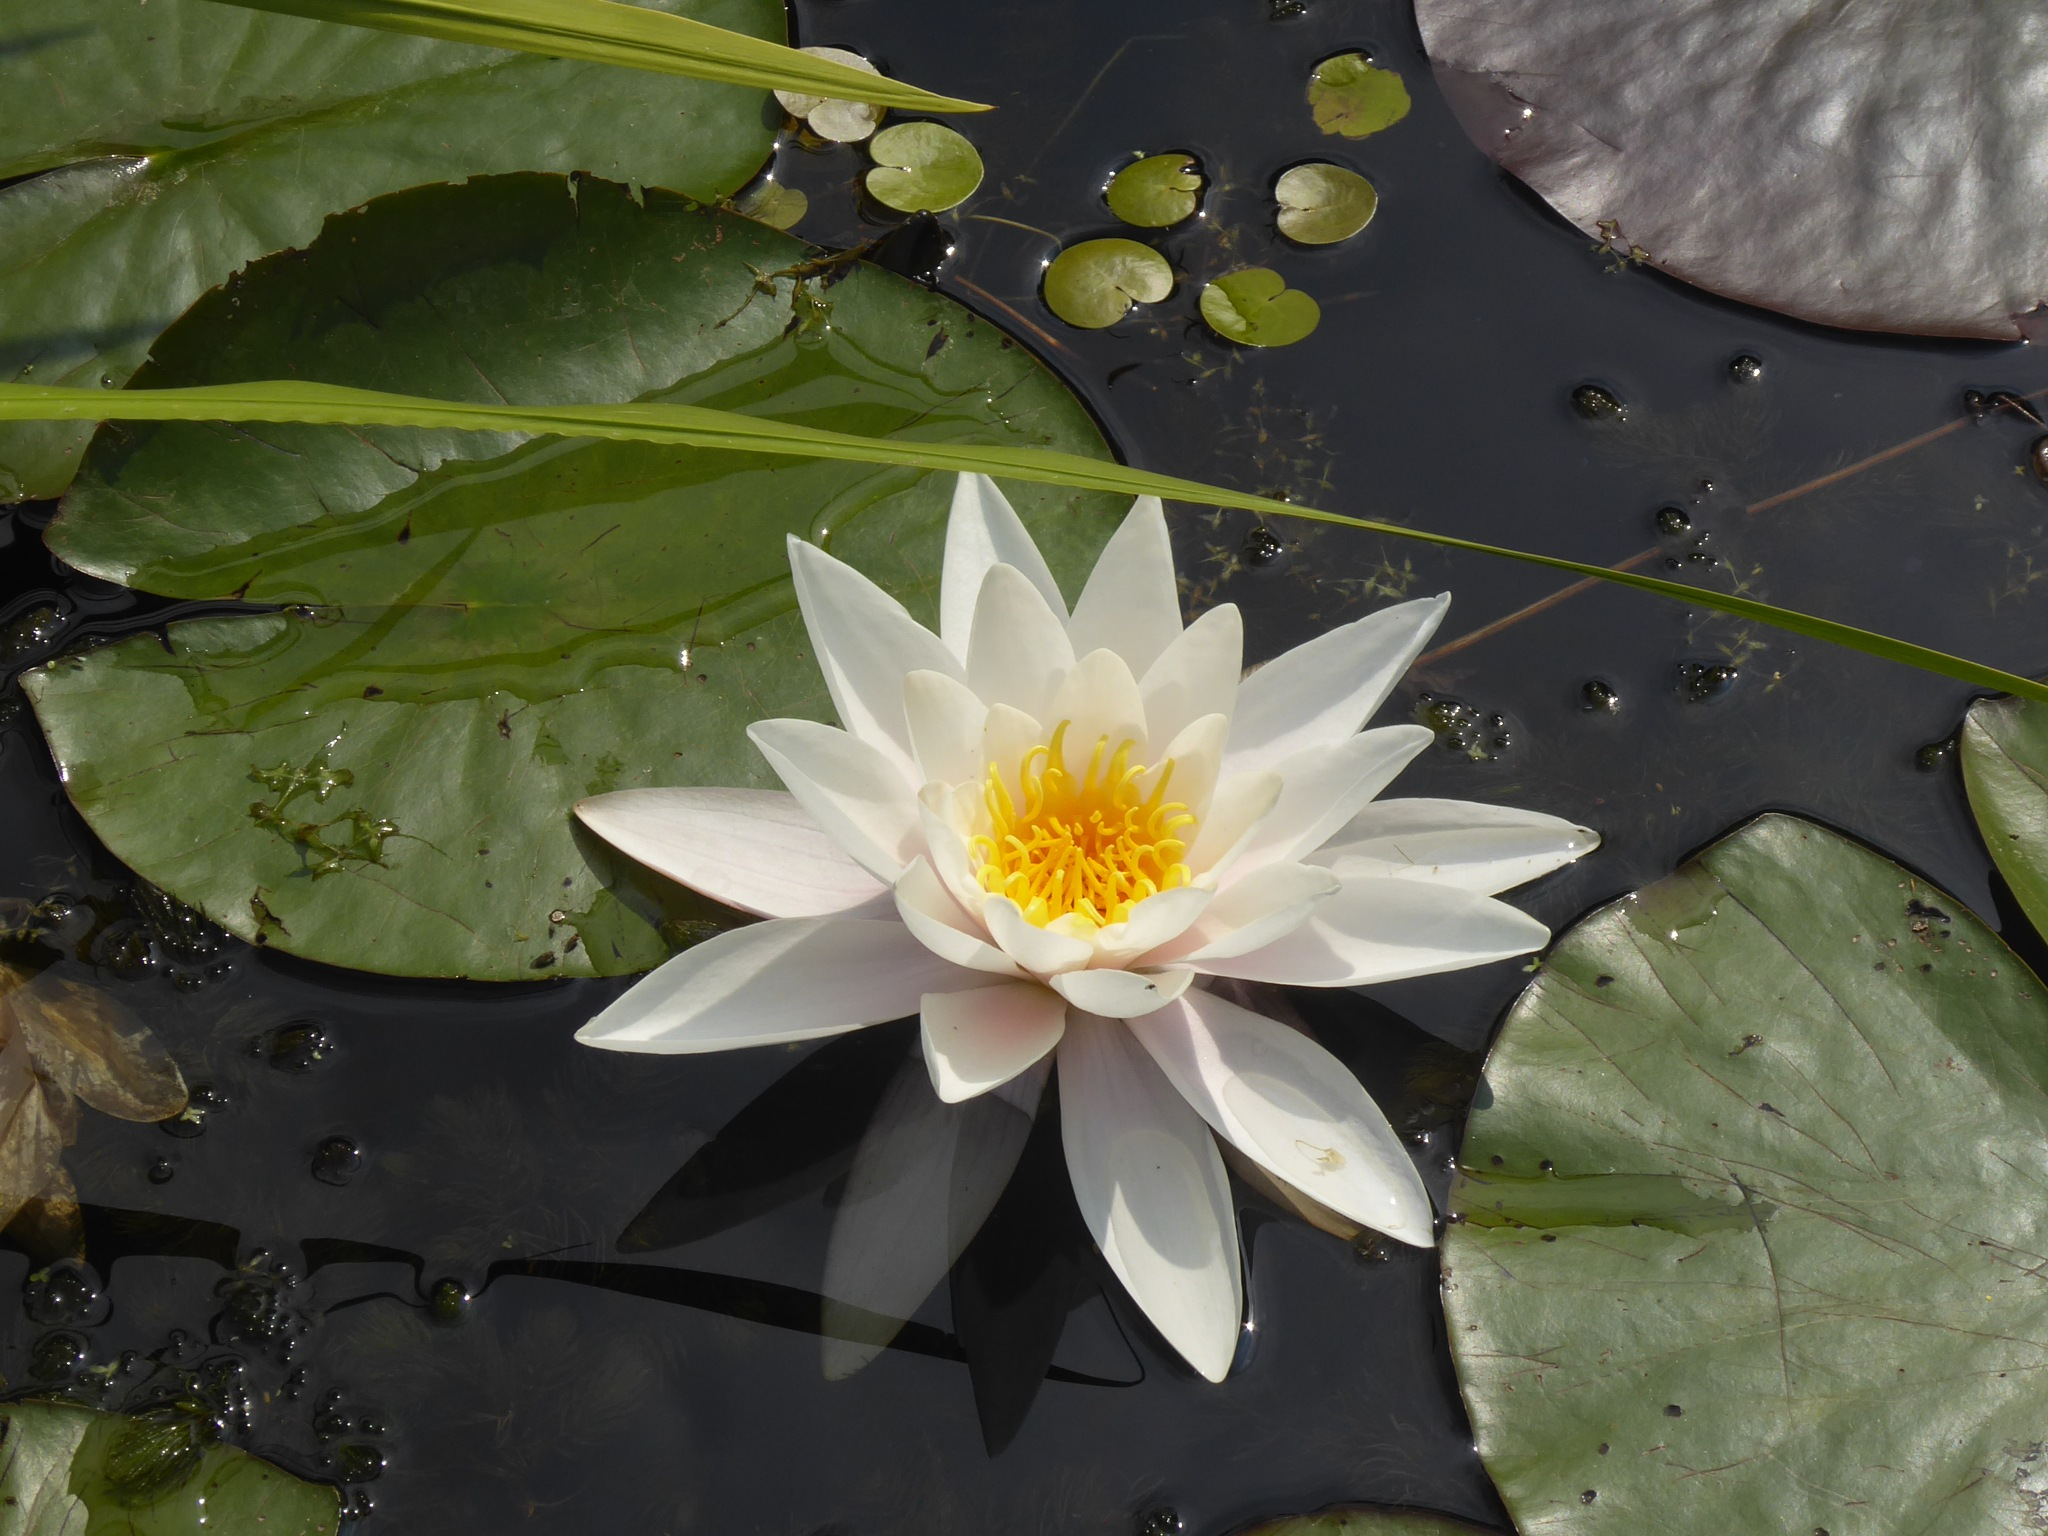 water lily by Norbert Reiss